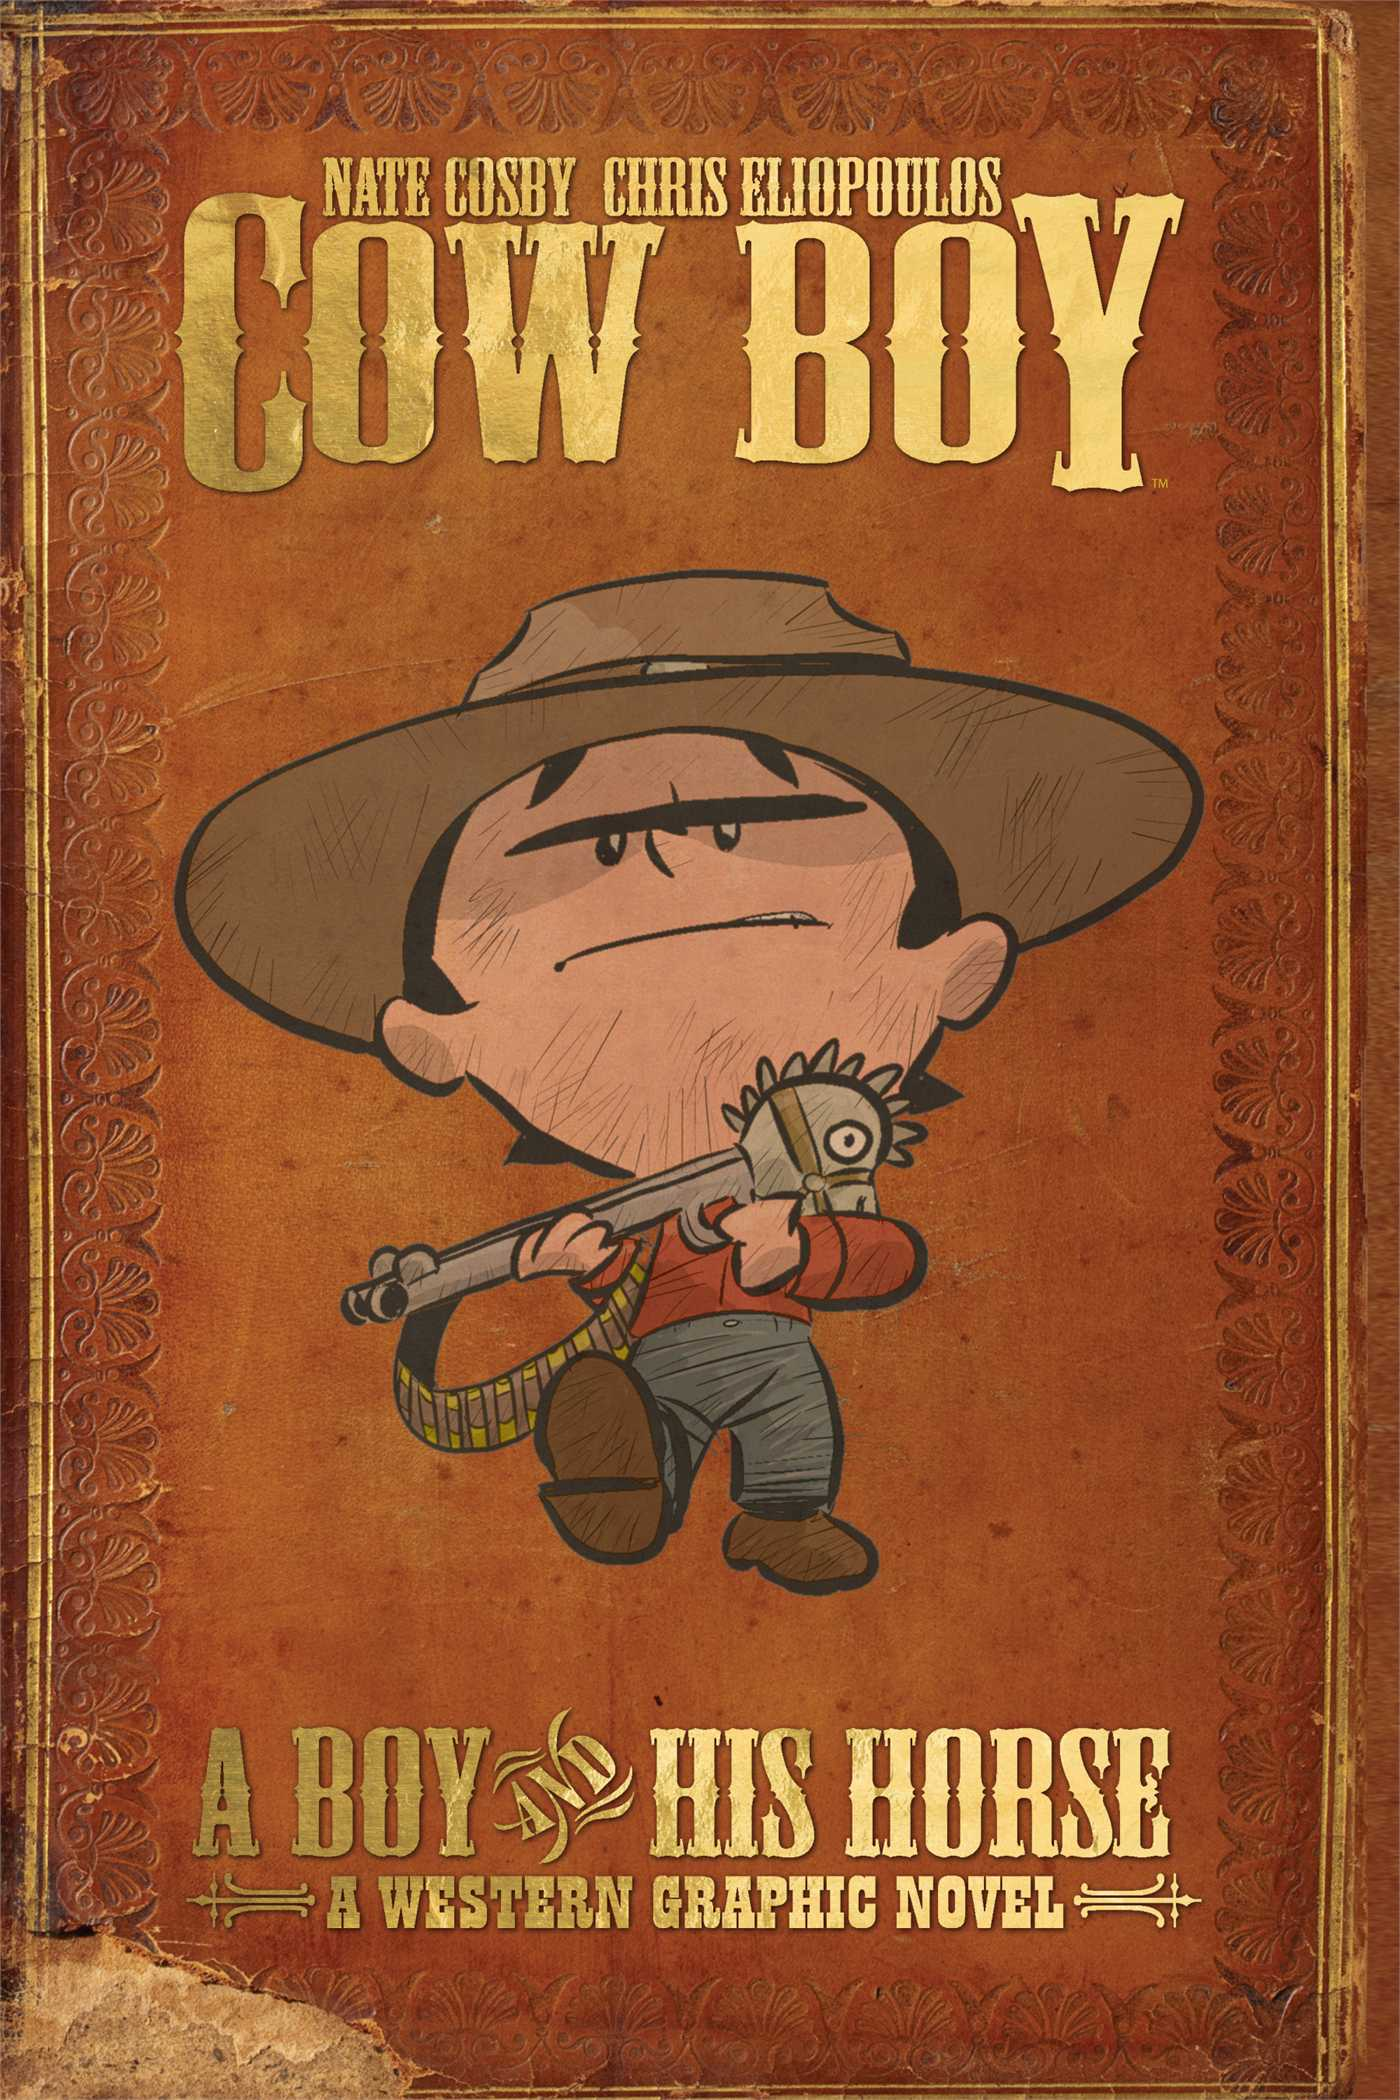 Cow-boy-a-boy-and-his-horse-9781936393671_hr